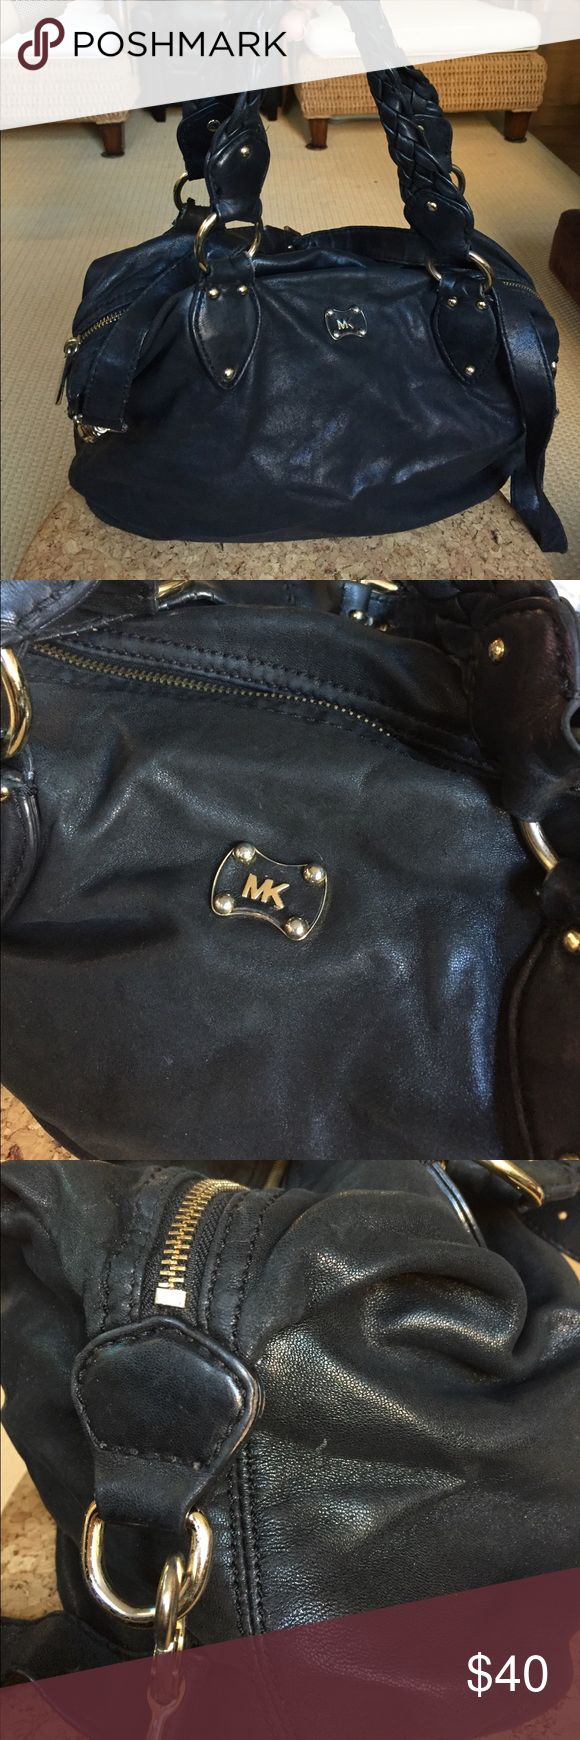 MICHAEL KORS ButterSoft Leather Bowling Satchel Used condition, priced accordingly - but the beautiful lambskin leather is SO soft, with some TLC could definitely have some life kissed back into it! Inside is really great condition, wear otherwise as pictured. Crossbody Strap as well! Michael Kors Bags Satchels